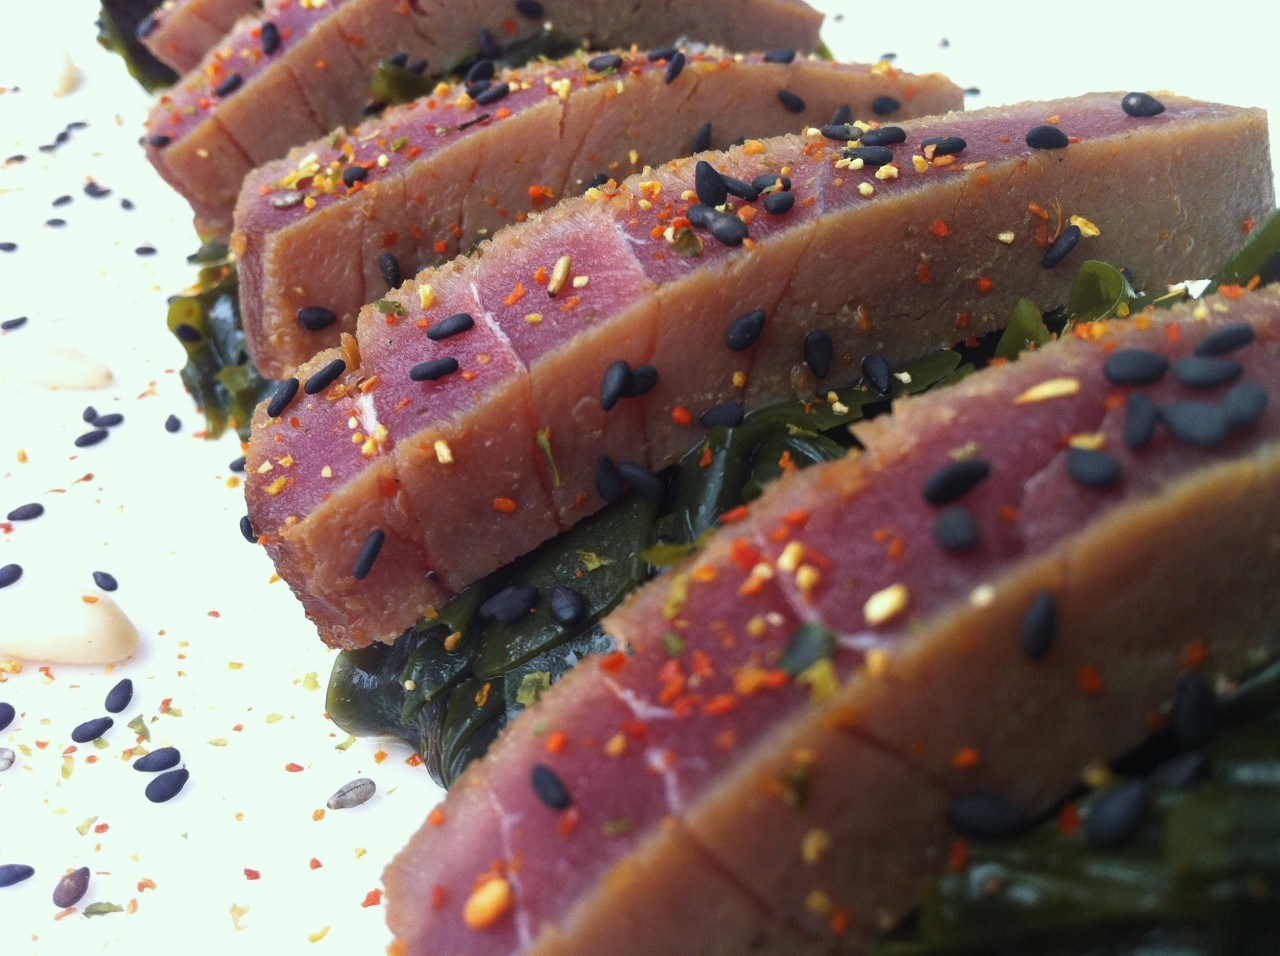 Ensalada de Wakame con Atún Rojo – Wakame Salad with Red Tuna